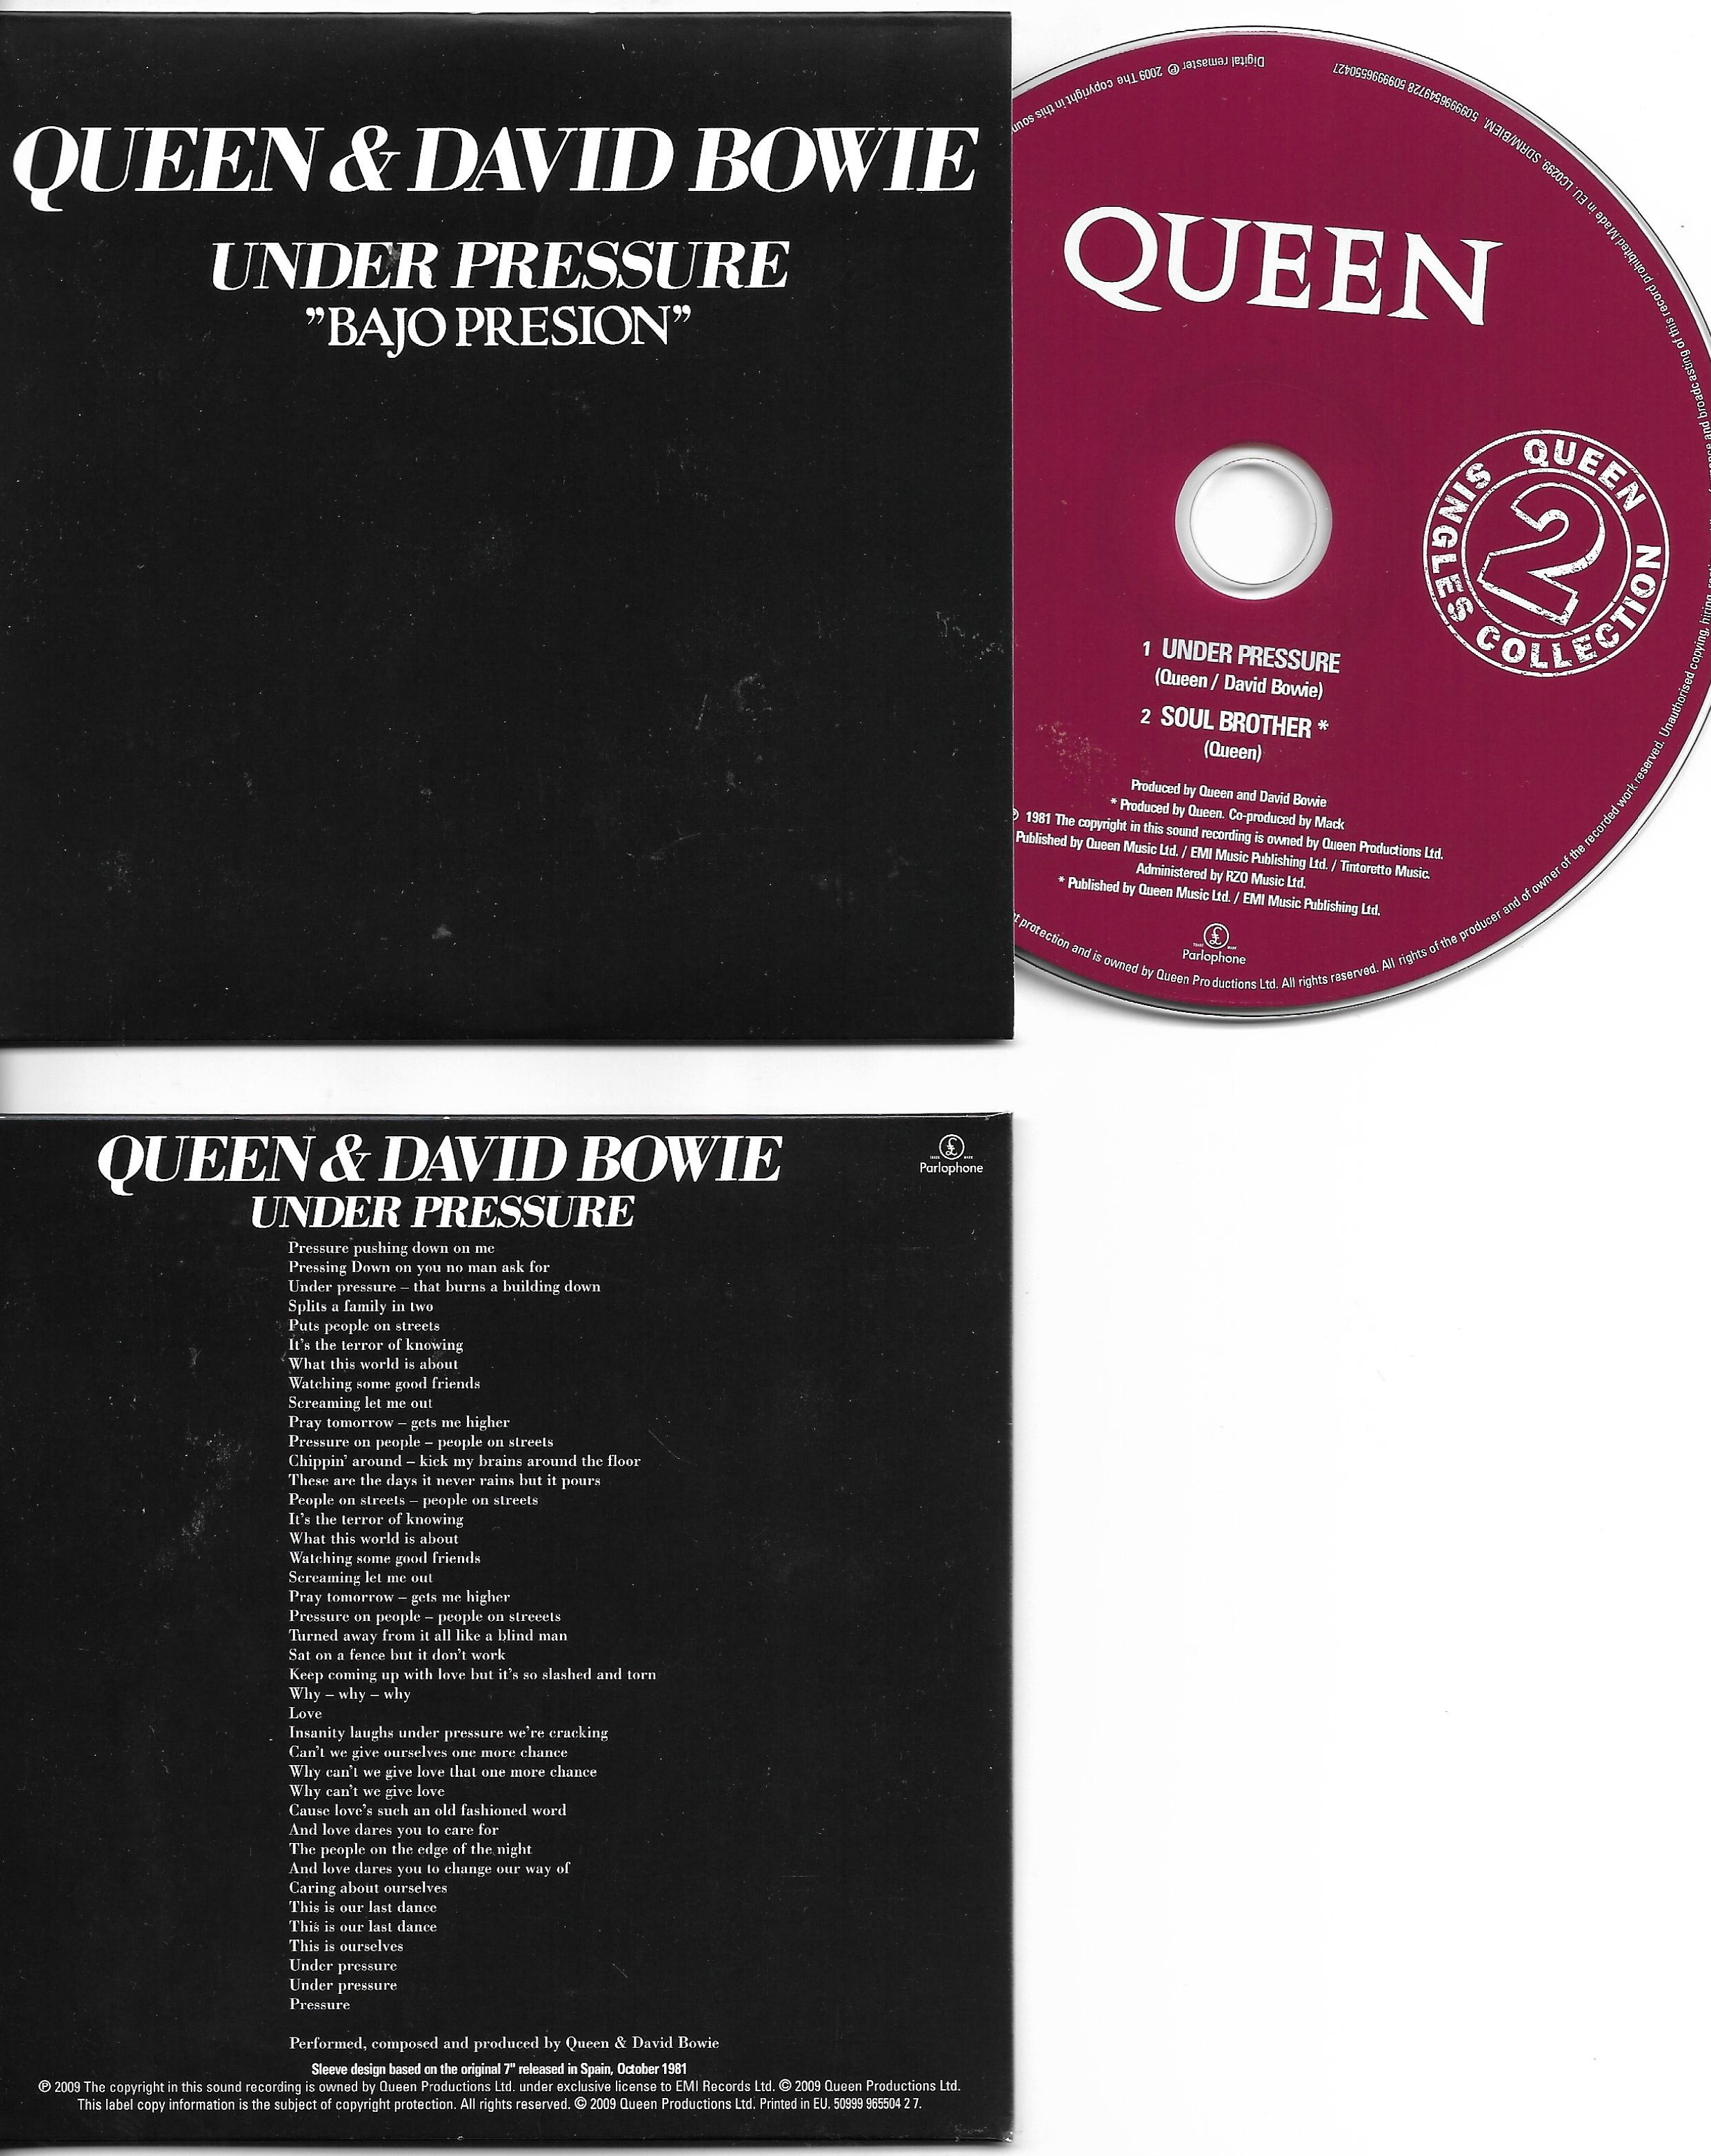 QUEEN & David BOWIE - Under Pressure + Spain + 2-track Card Sleeve - Reedition Du 45t Original - - Reissue Of Original 7&q